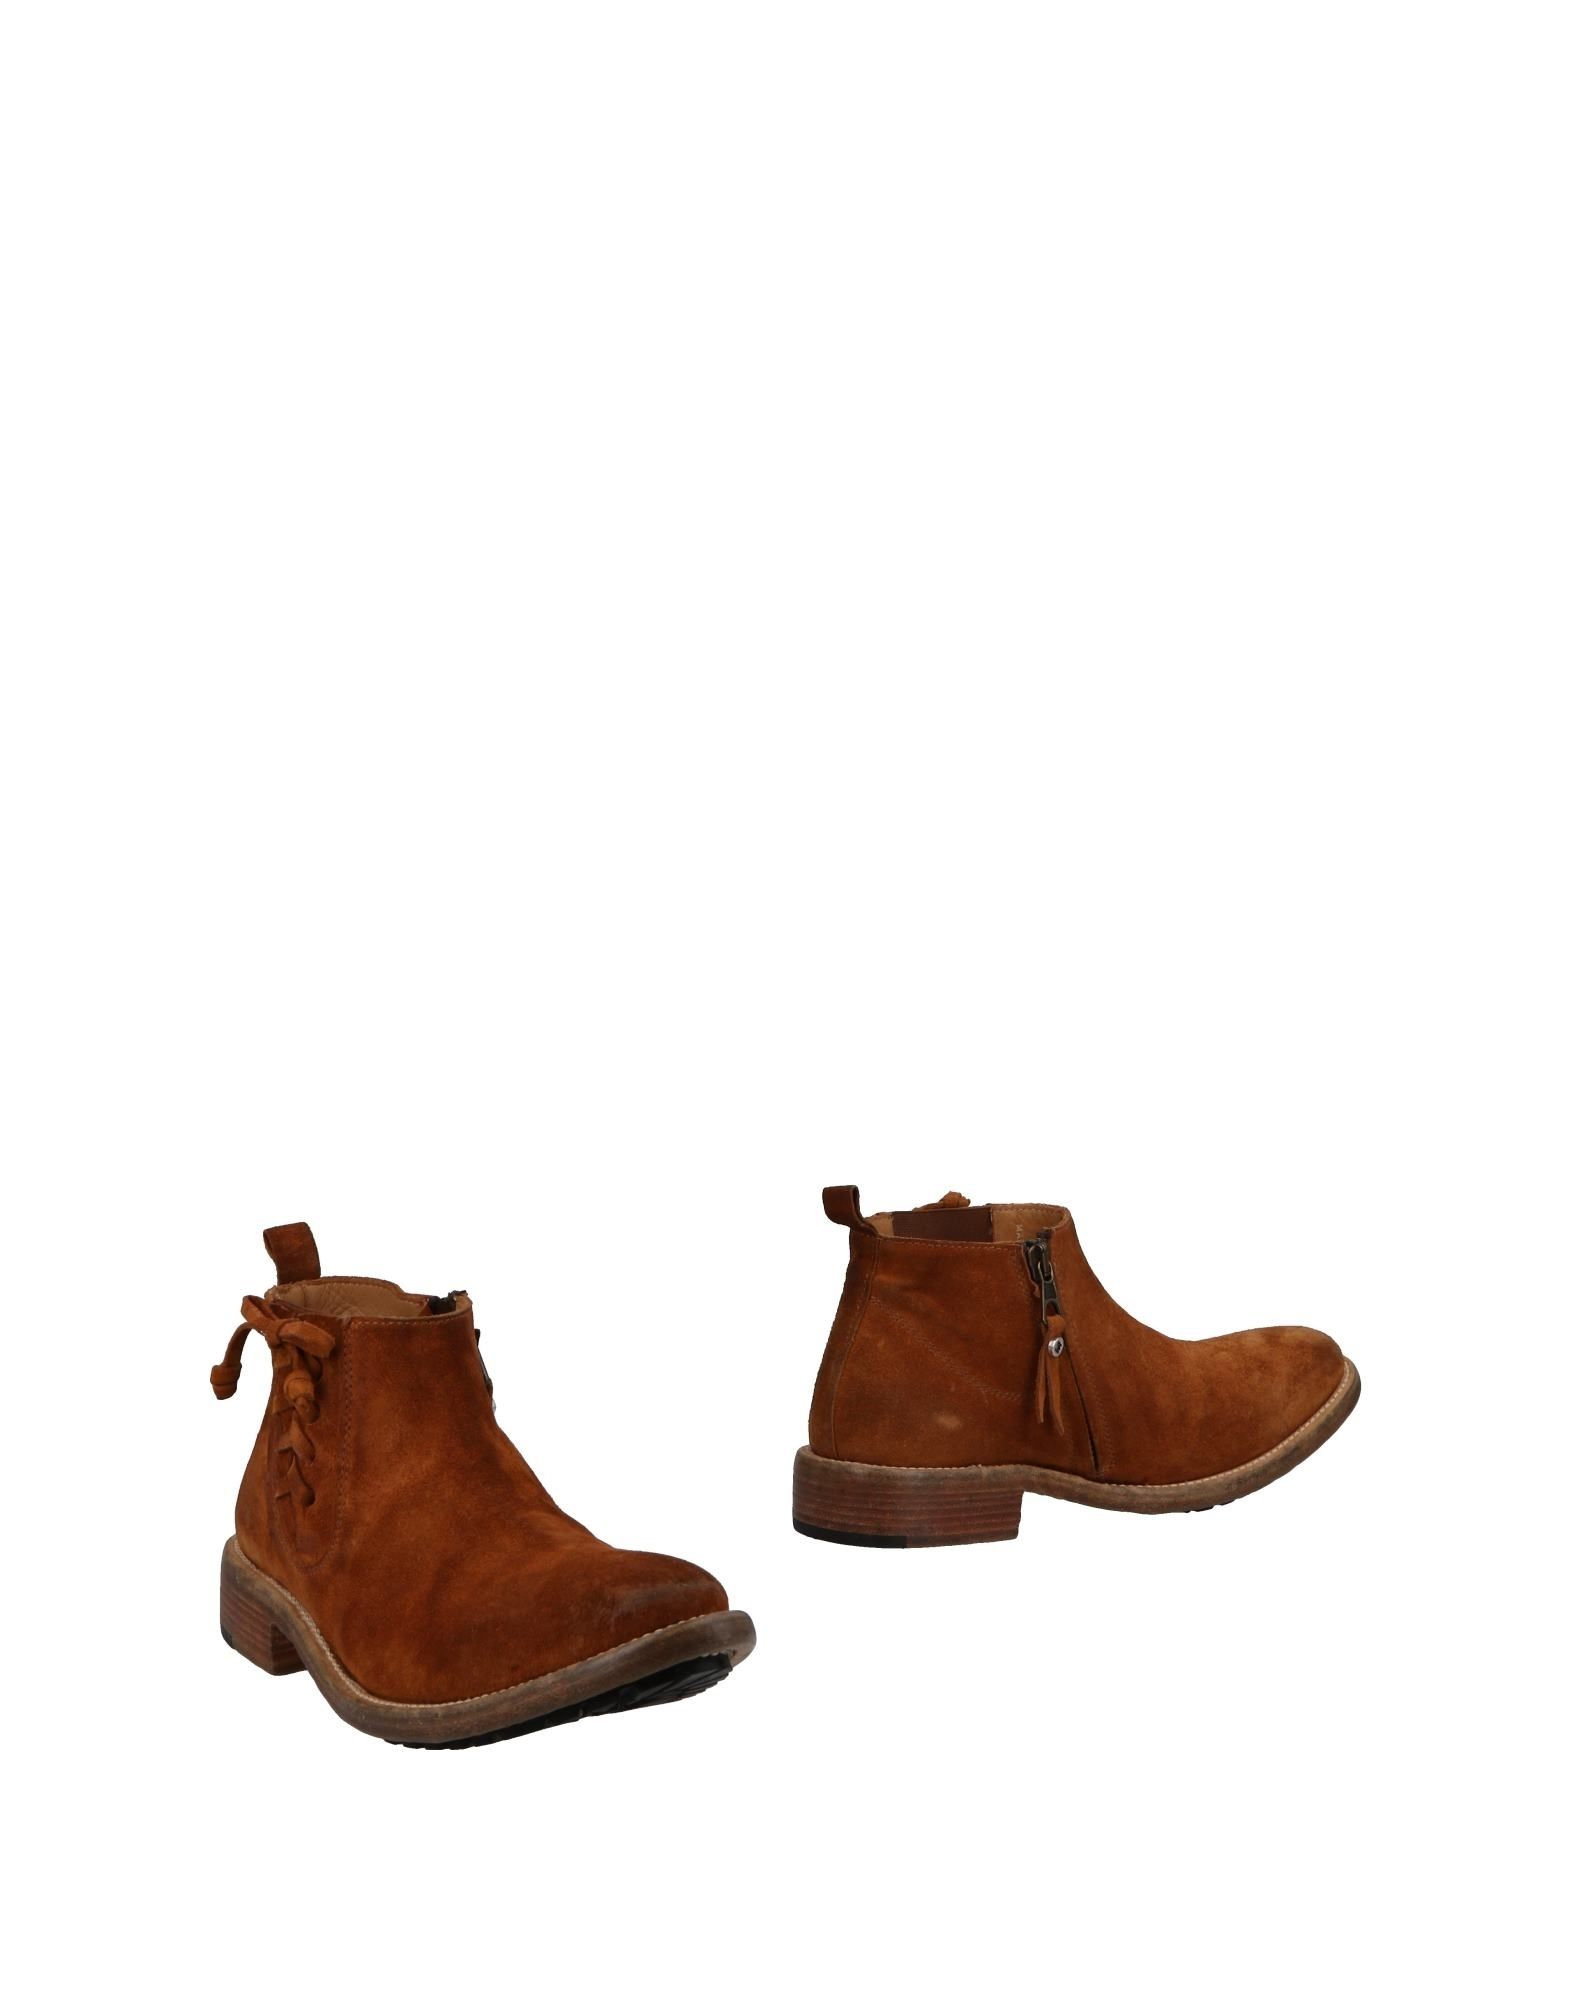 RUST MOOD Ankle Boot in Tan